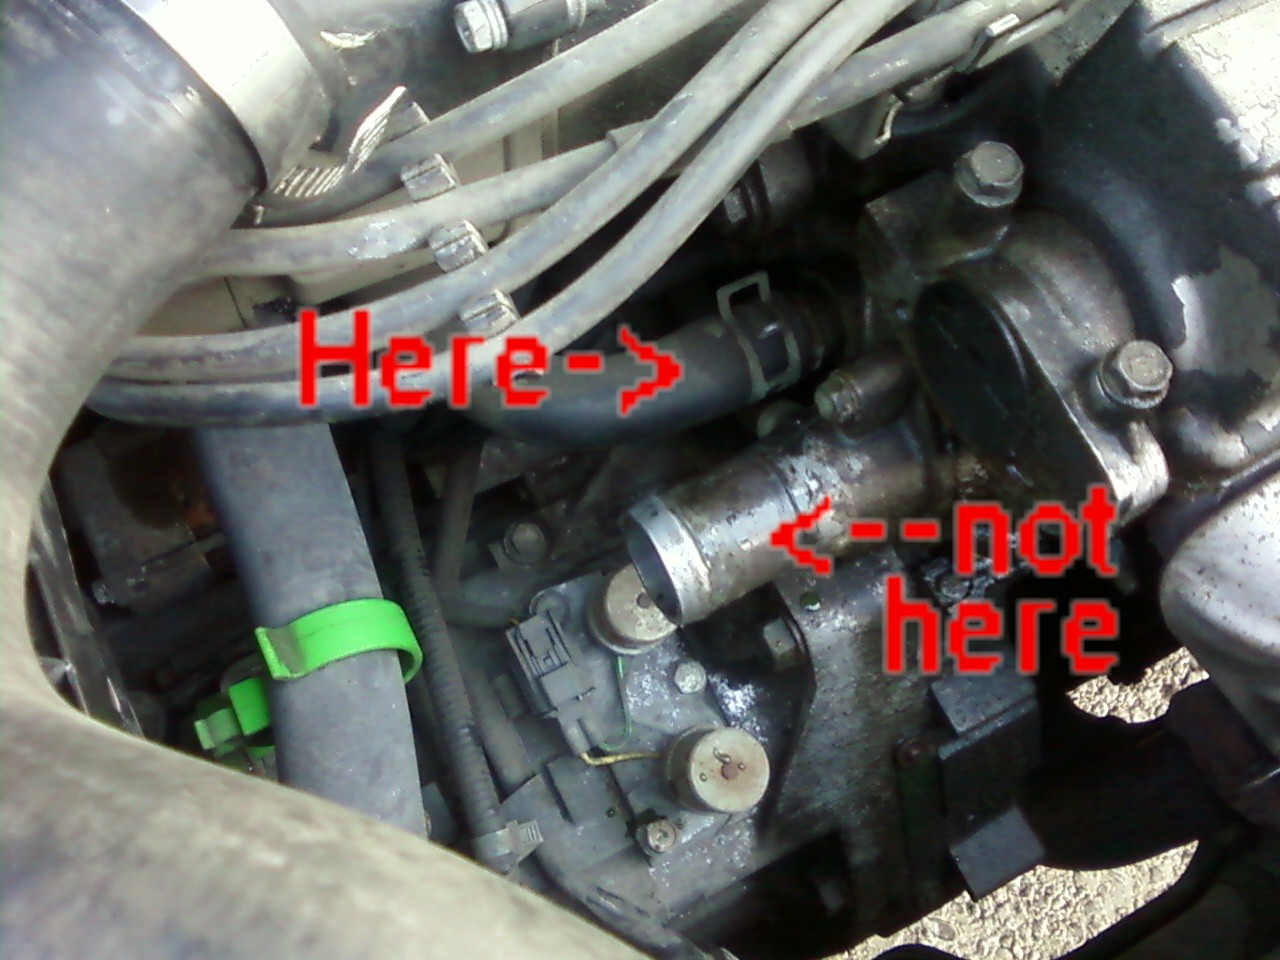 The Weasels Bloggage Honda Crv Thermostat Replacement 2010 Accord Fuse Box